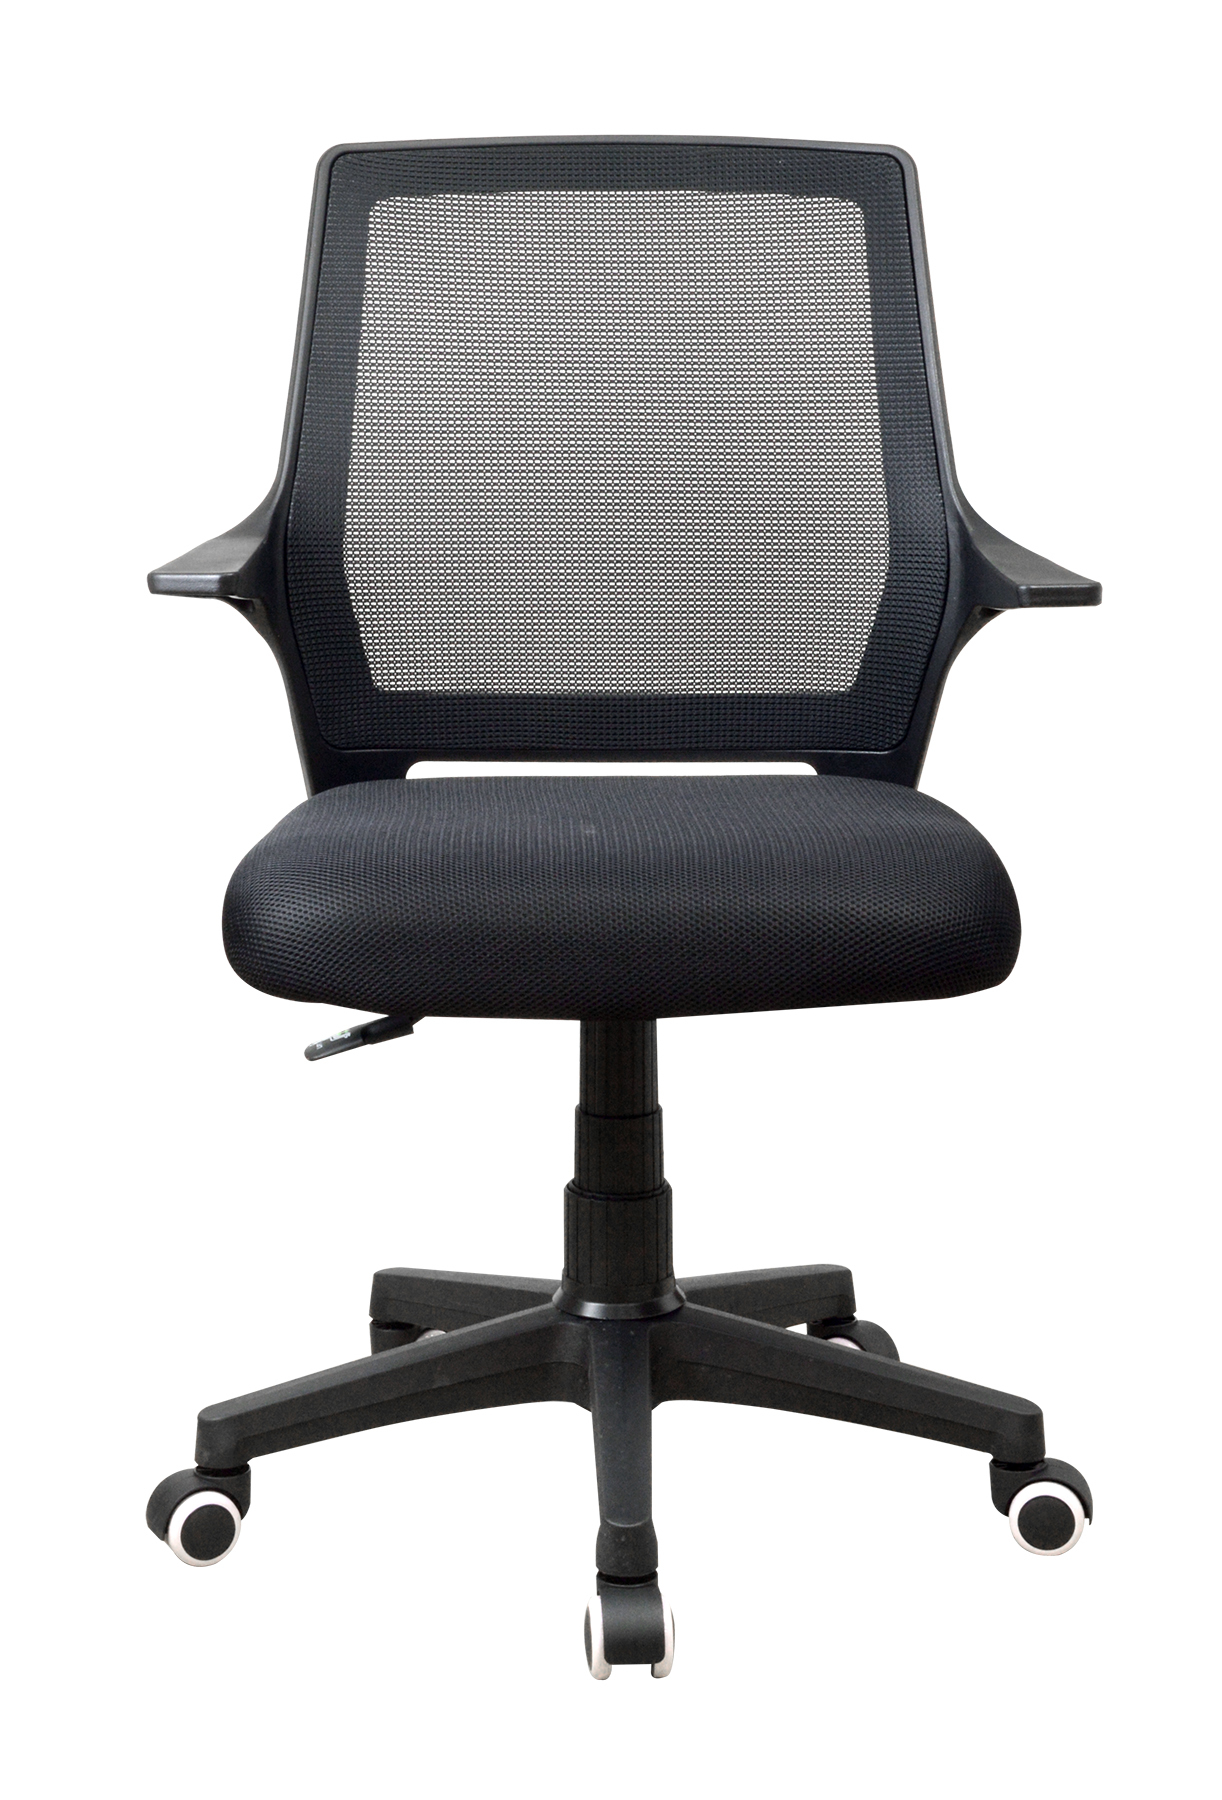 office chair B 804 front.jpg